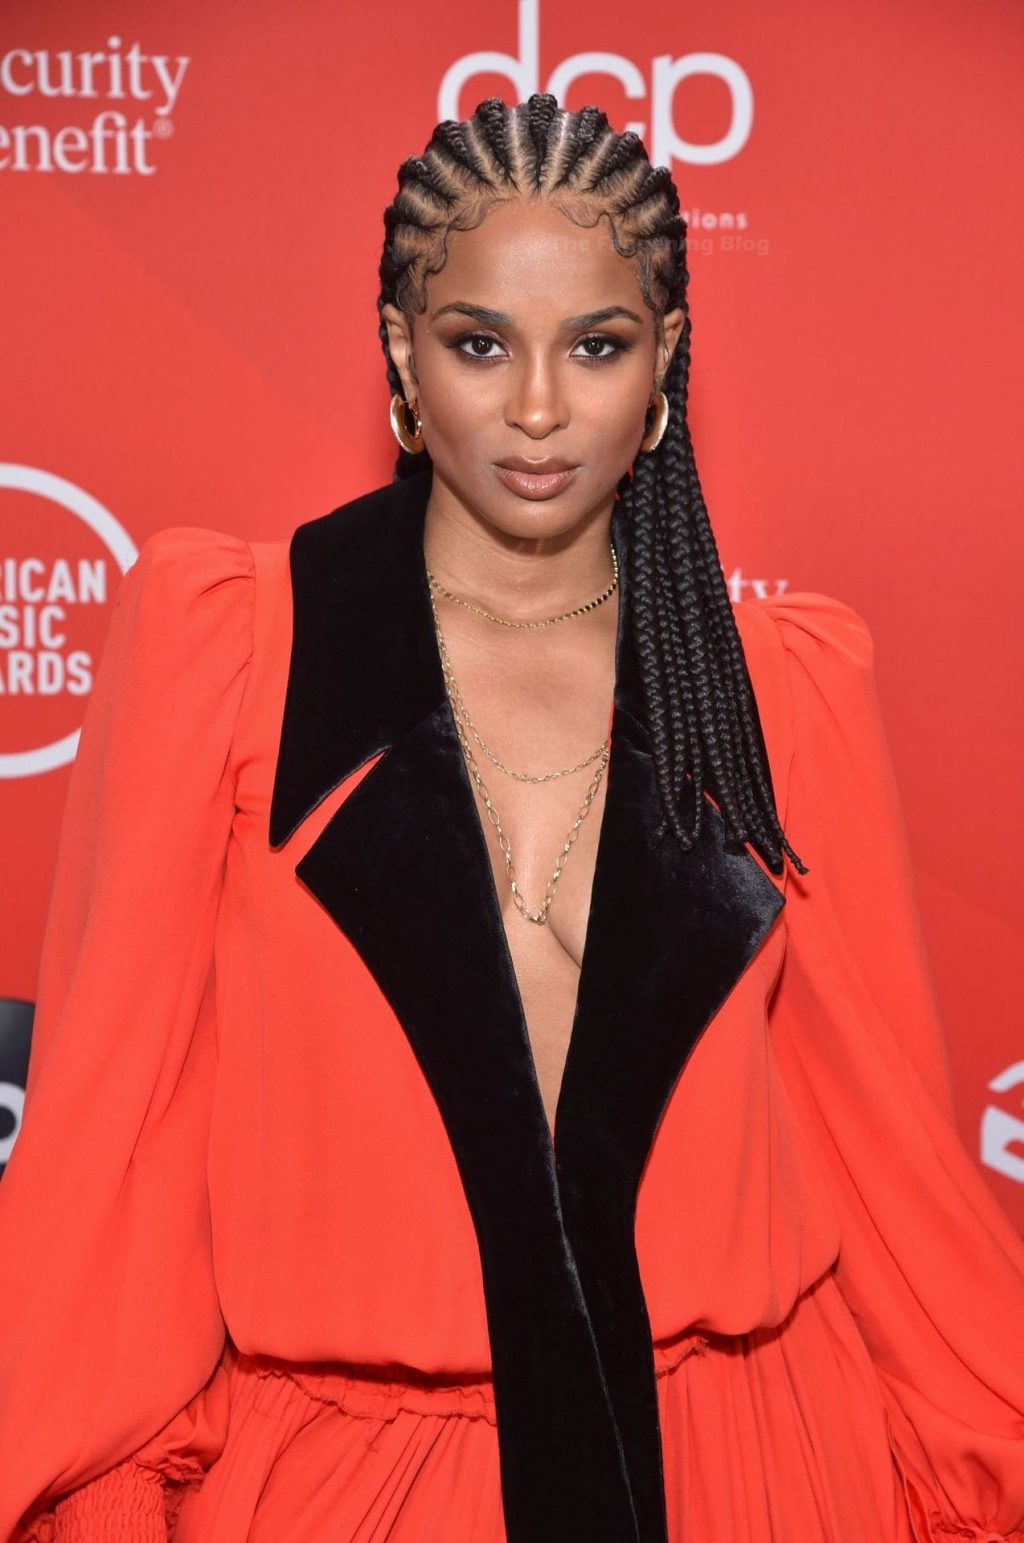 Ciara Shows Off Her Cleavage at the American Music Awards (17 Photos)